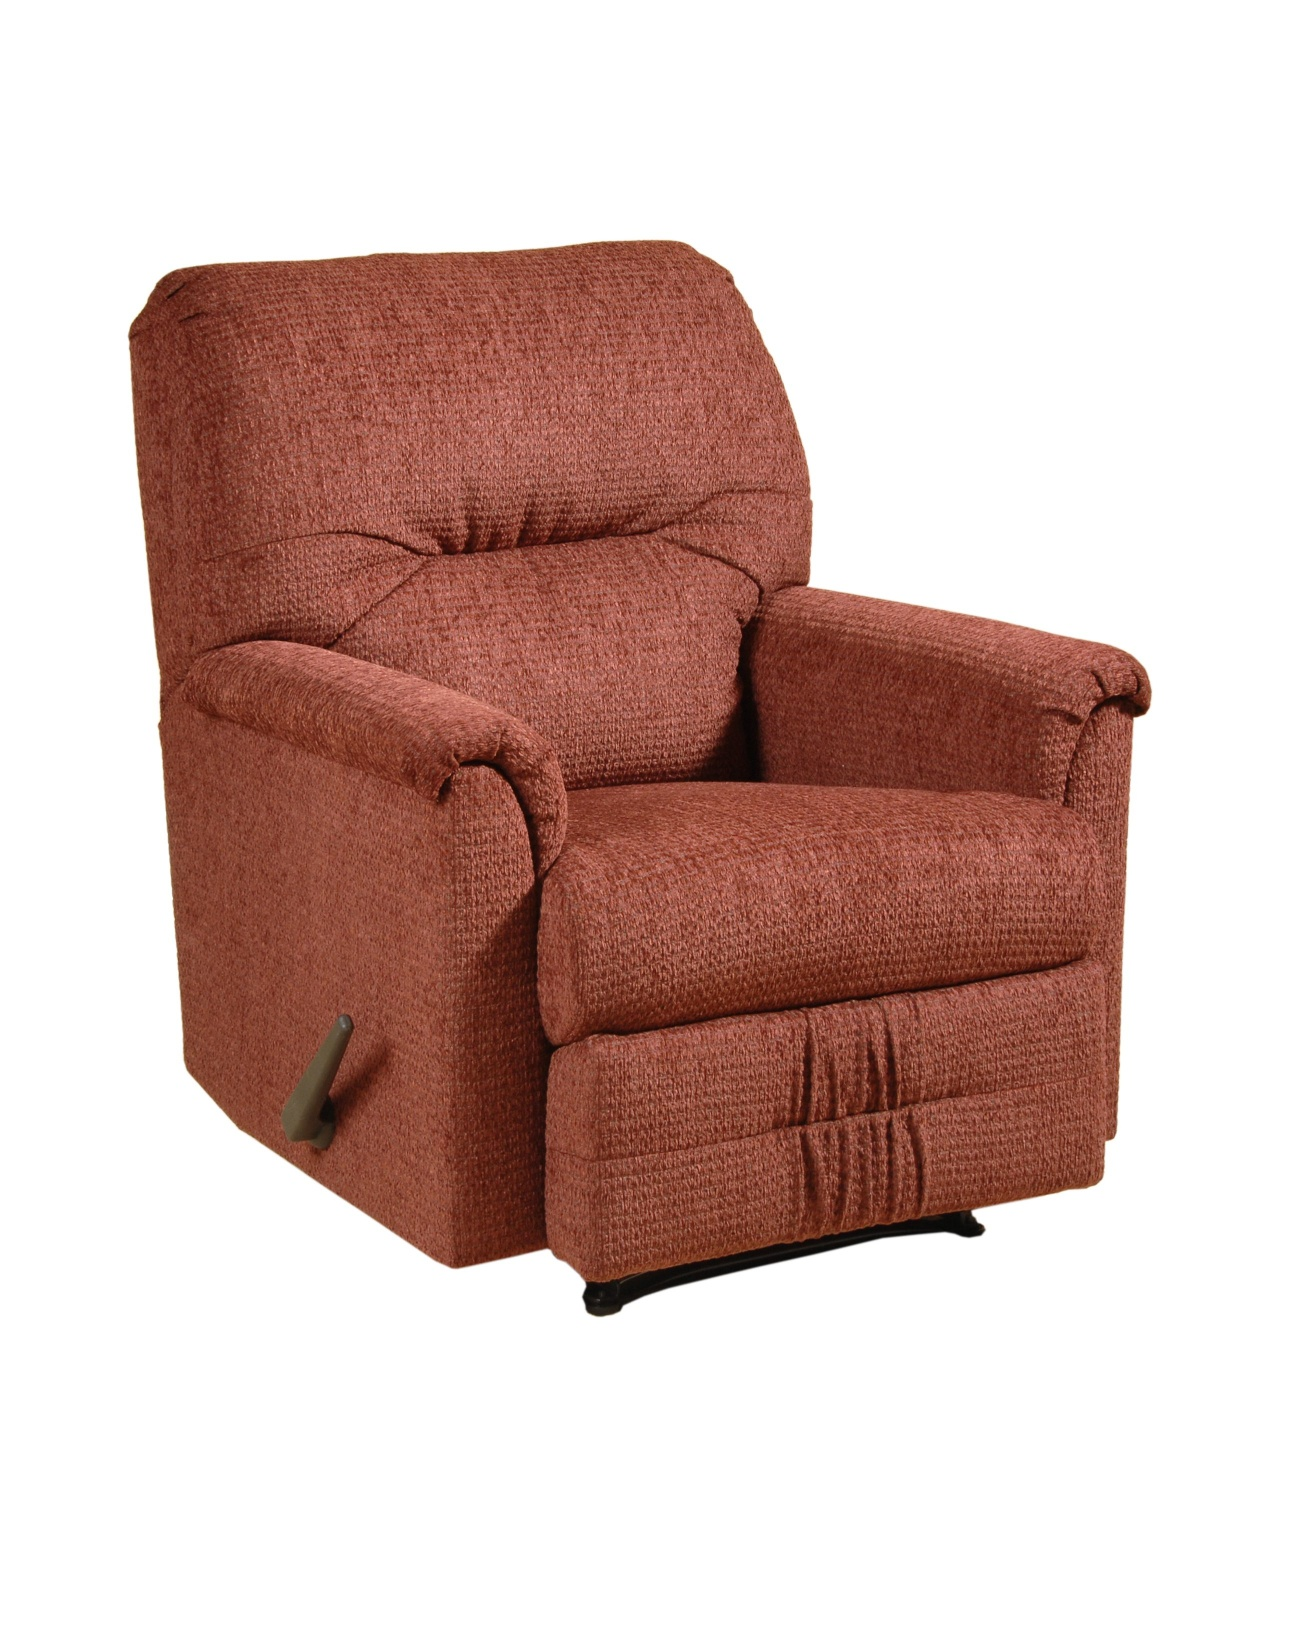 100RCL Recliner in Radar Wine